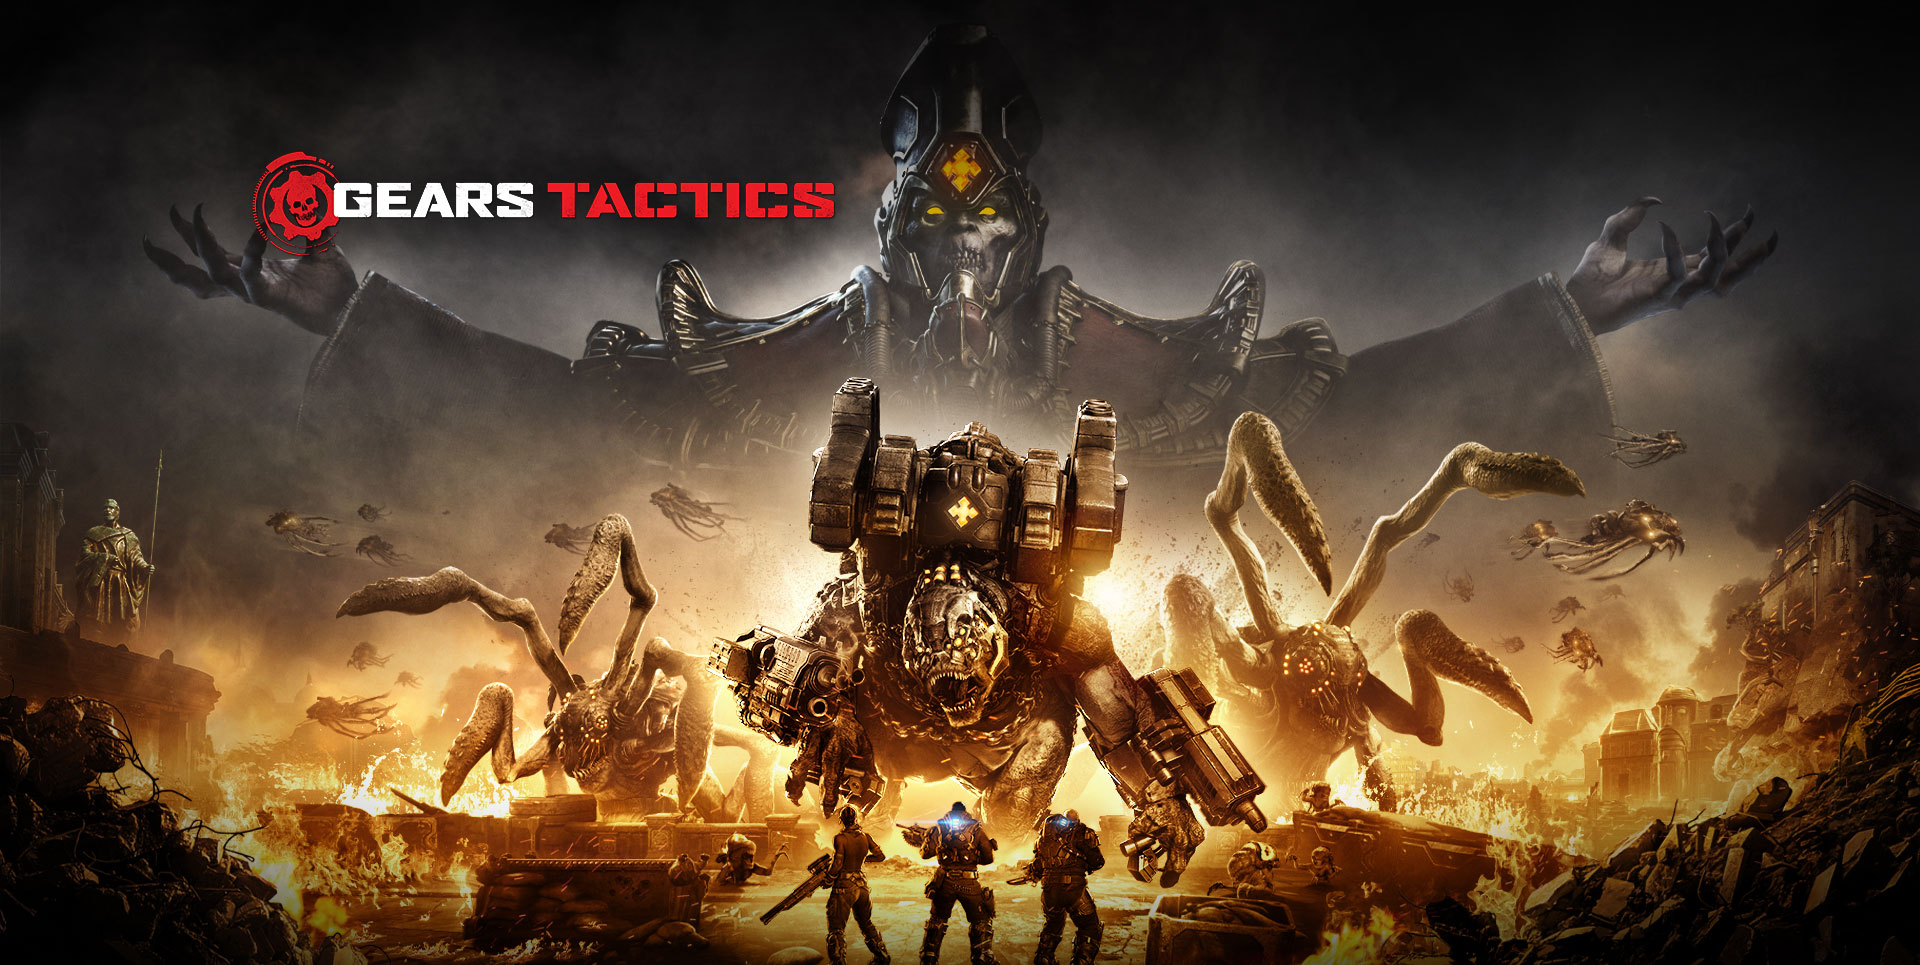 Gears Tactics Logo, scene of three characters going about to fight several large monsters while the area around them is on fire